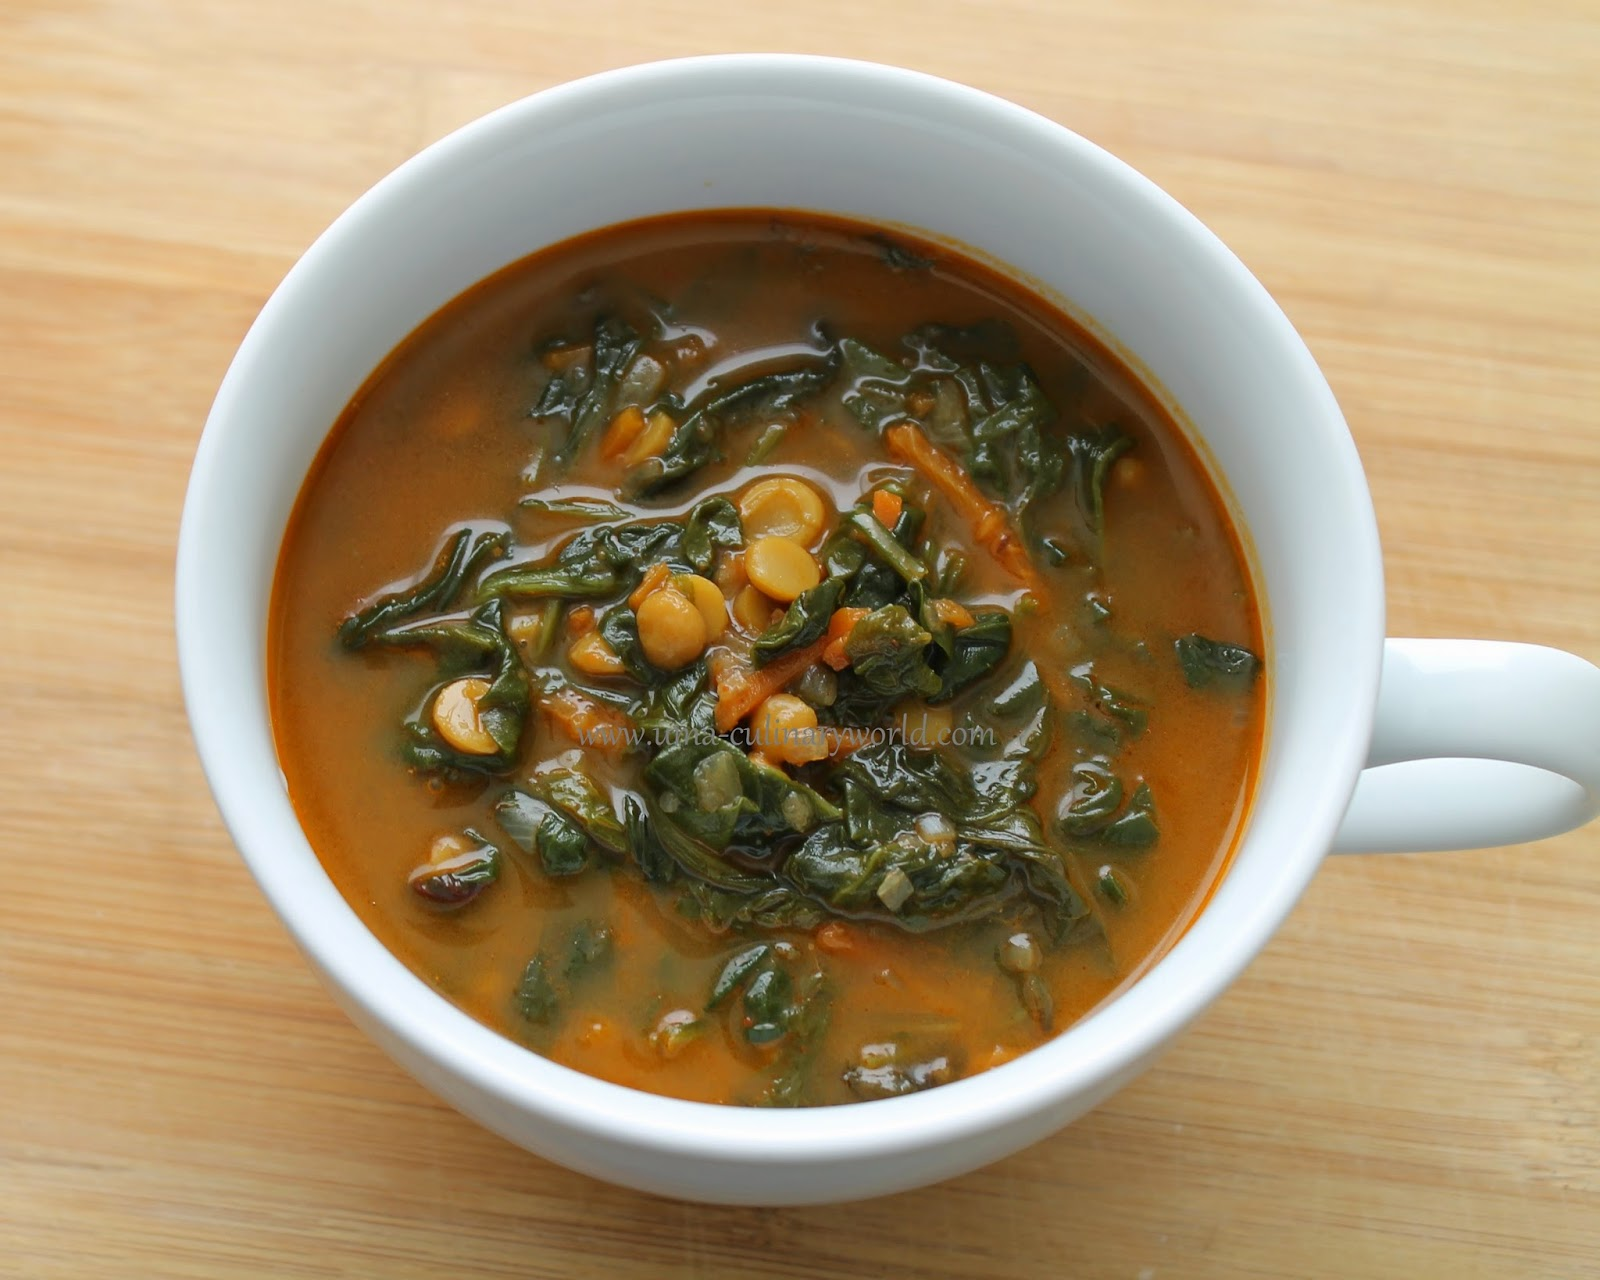 Mixed Vegetables Lentil Soup